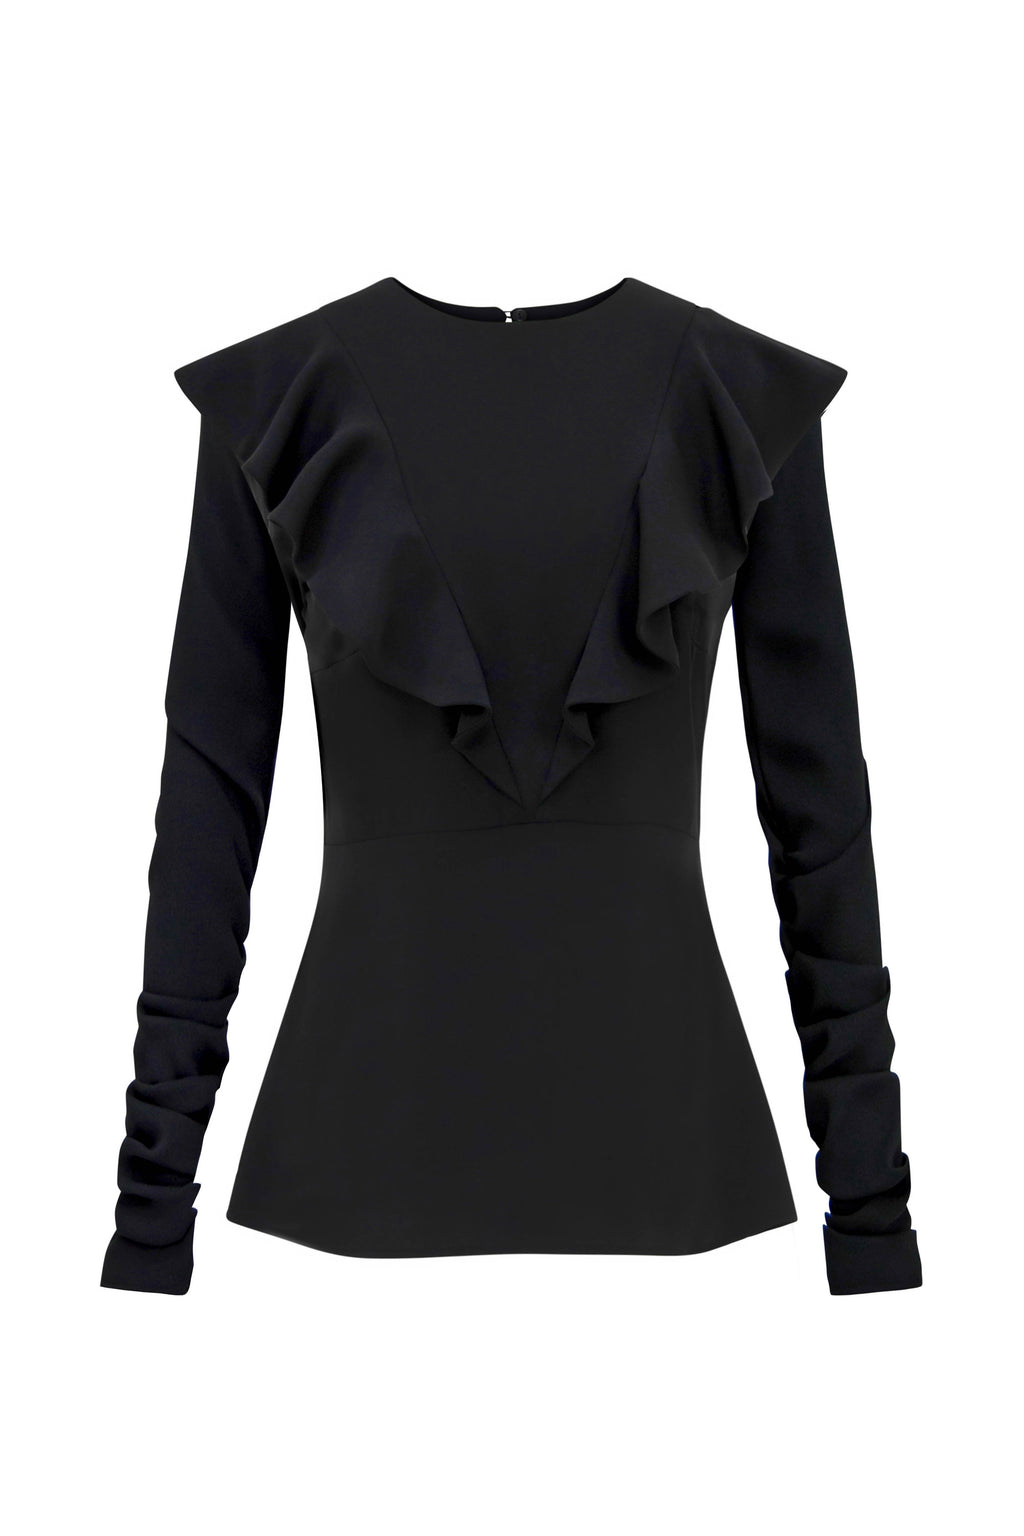 Back on Track Fitted Ruffle Blouse - Tia Dorraine London